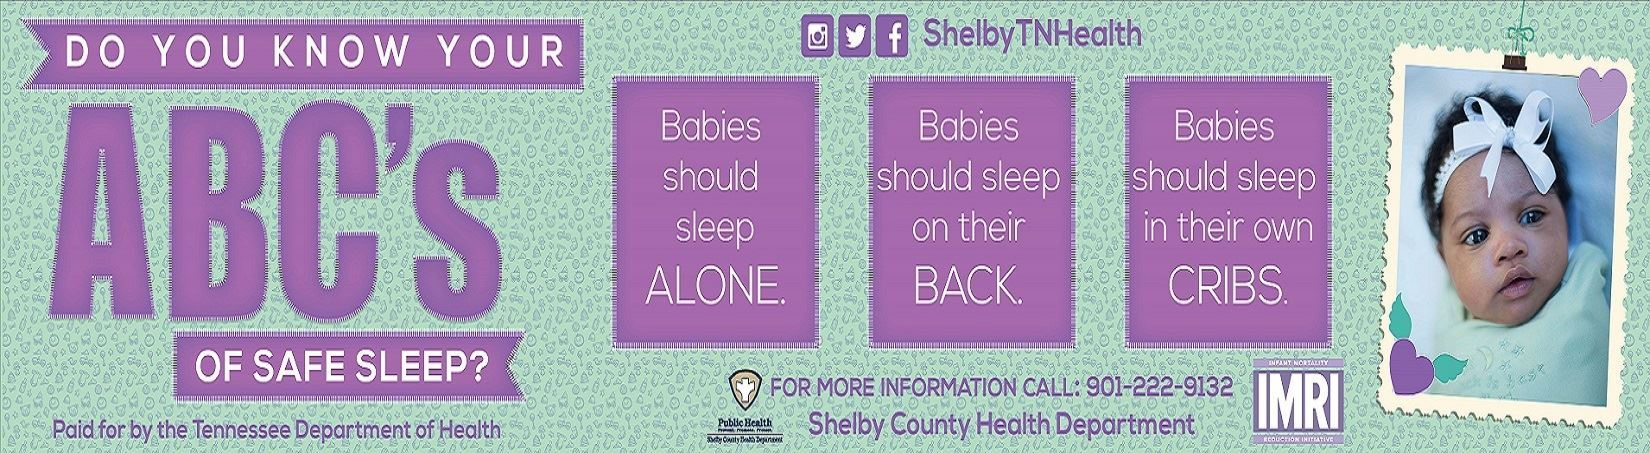 Do You Know Your ABCs of Safe Sleep? Babies should sleep ALONE. Babies should sleep on their BACK. B